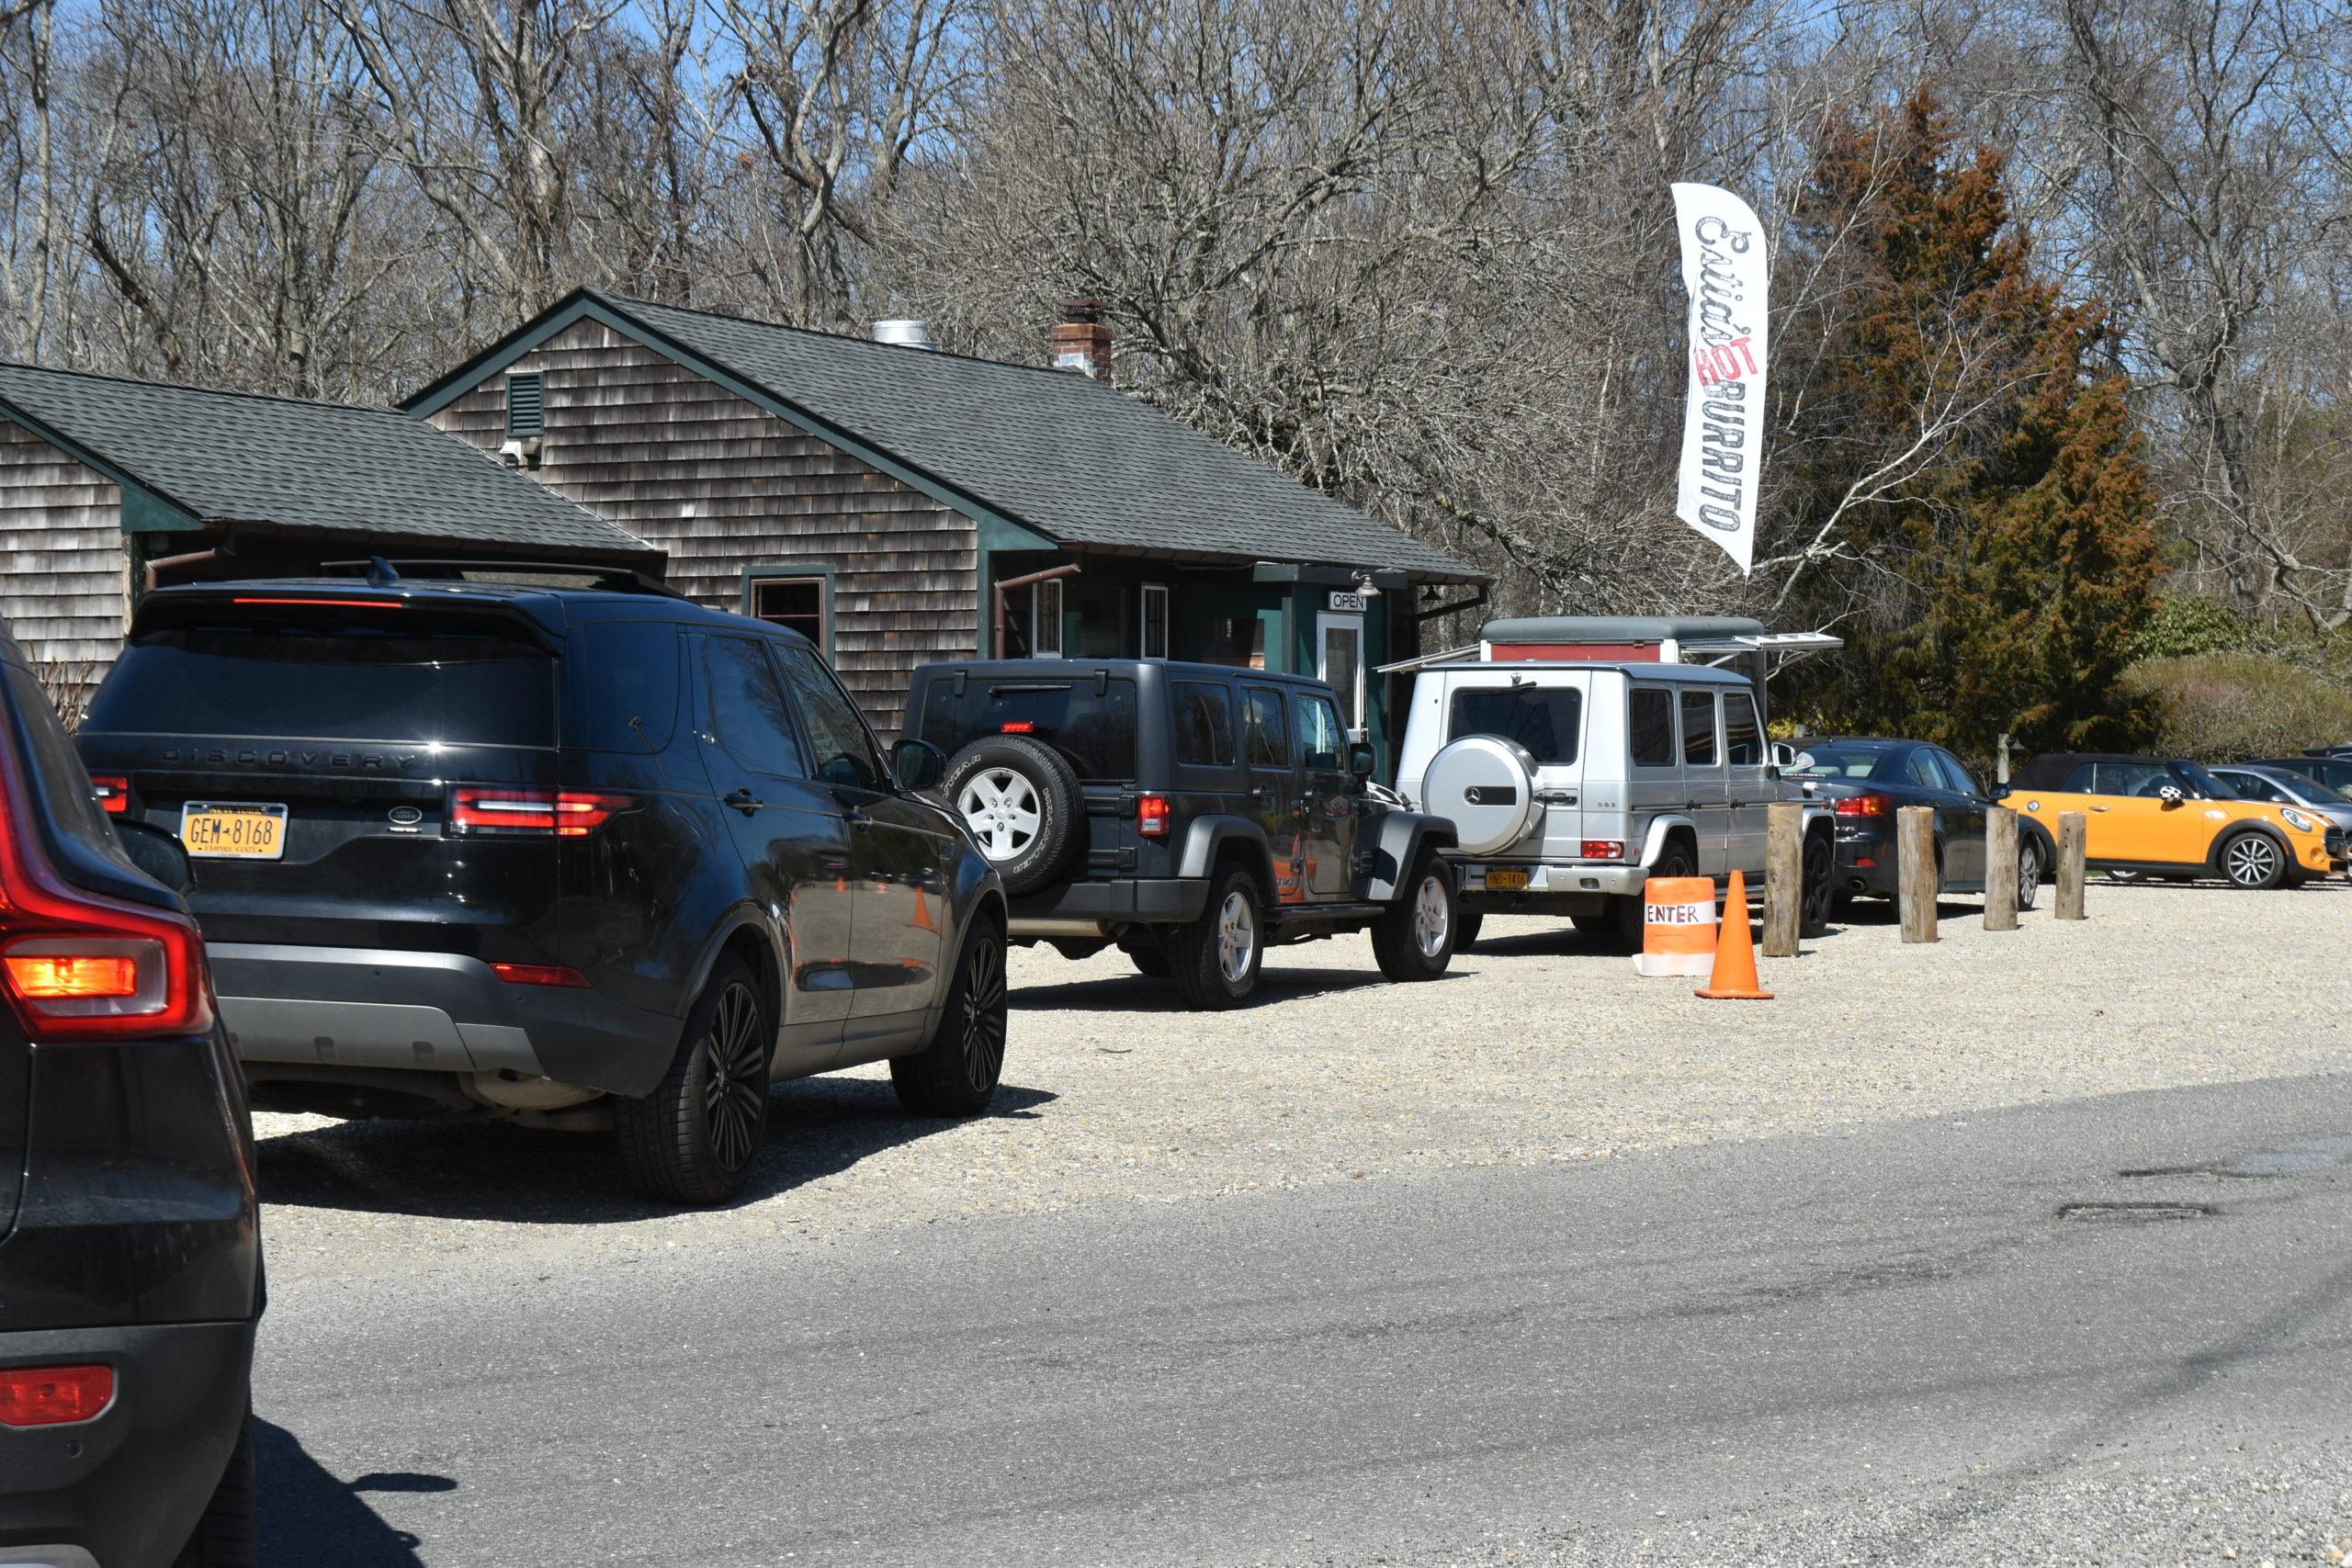 A lineup for takeout at Estia's Little Kitchen in Sag Harbor on Saturday.